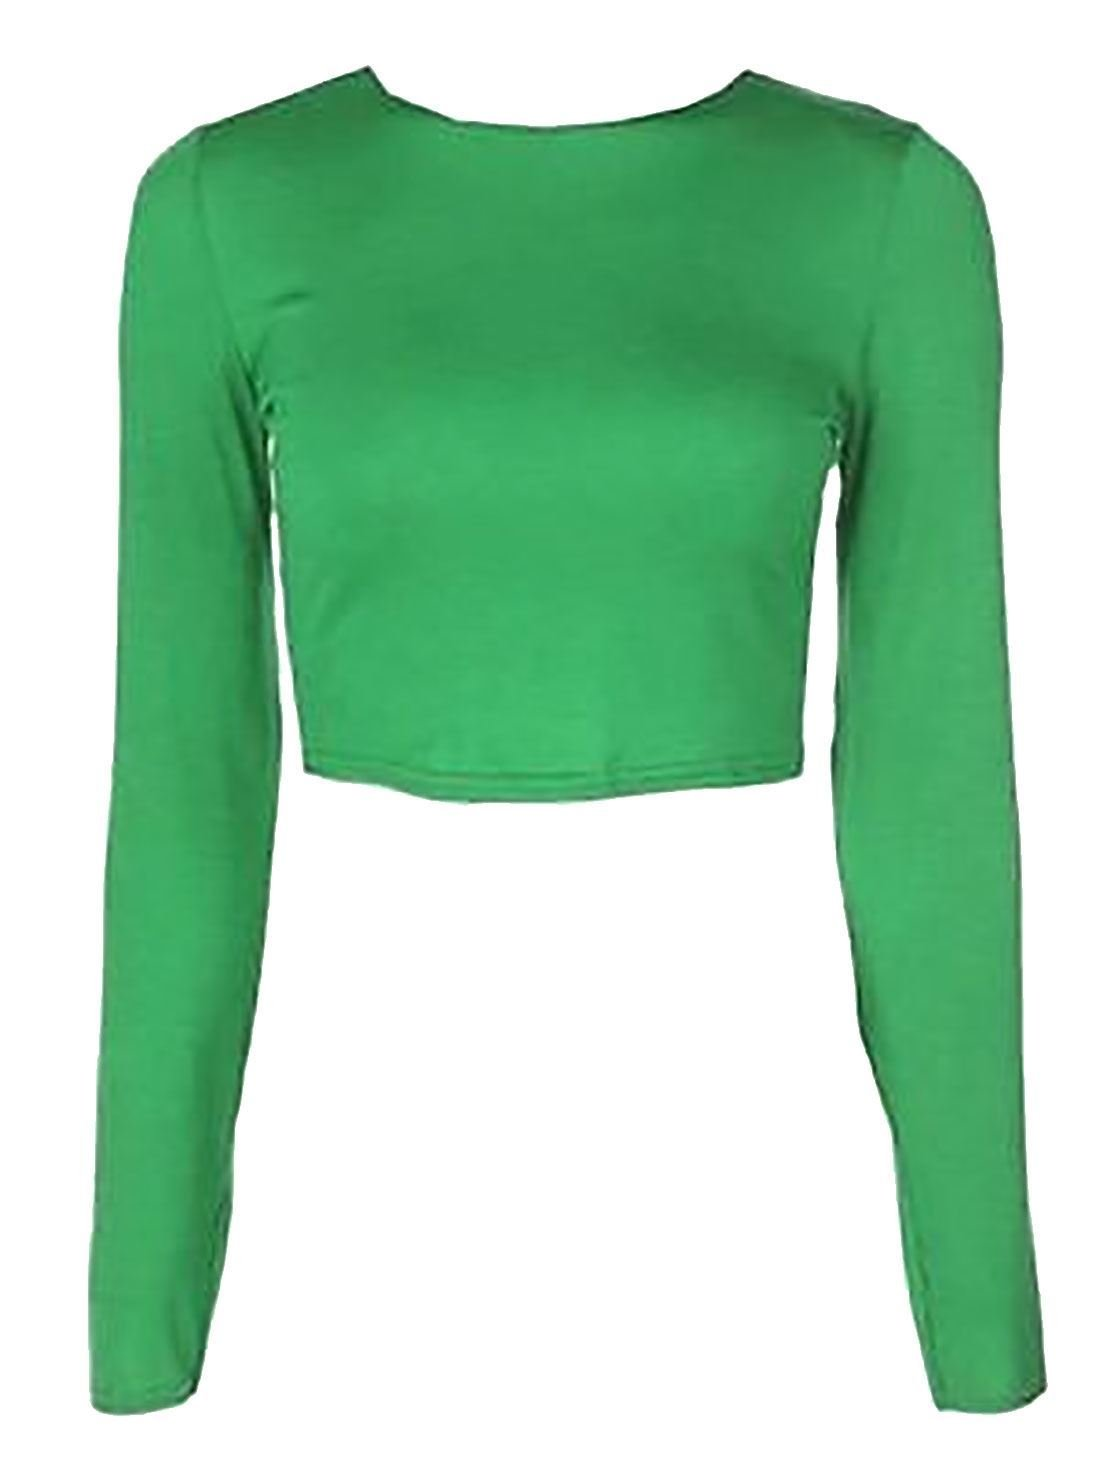 NEW LADIES ROUND NECK LONG SLEEVE CROP TOP T SHIRT TOPS SIZE 8-14